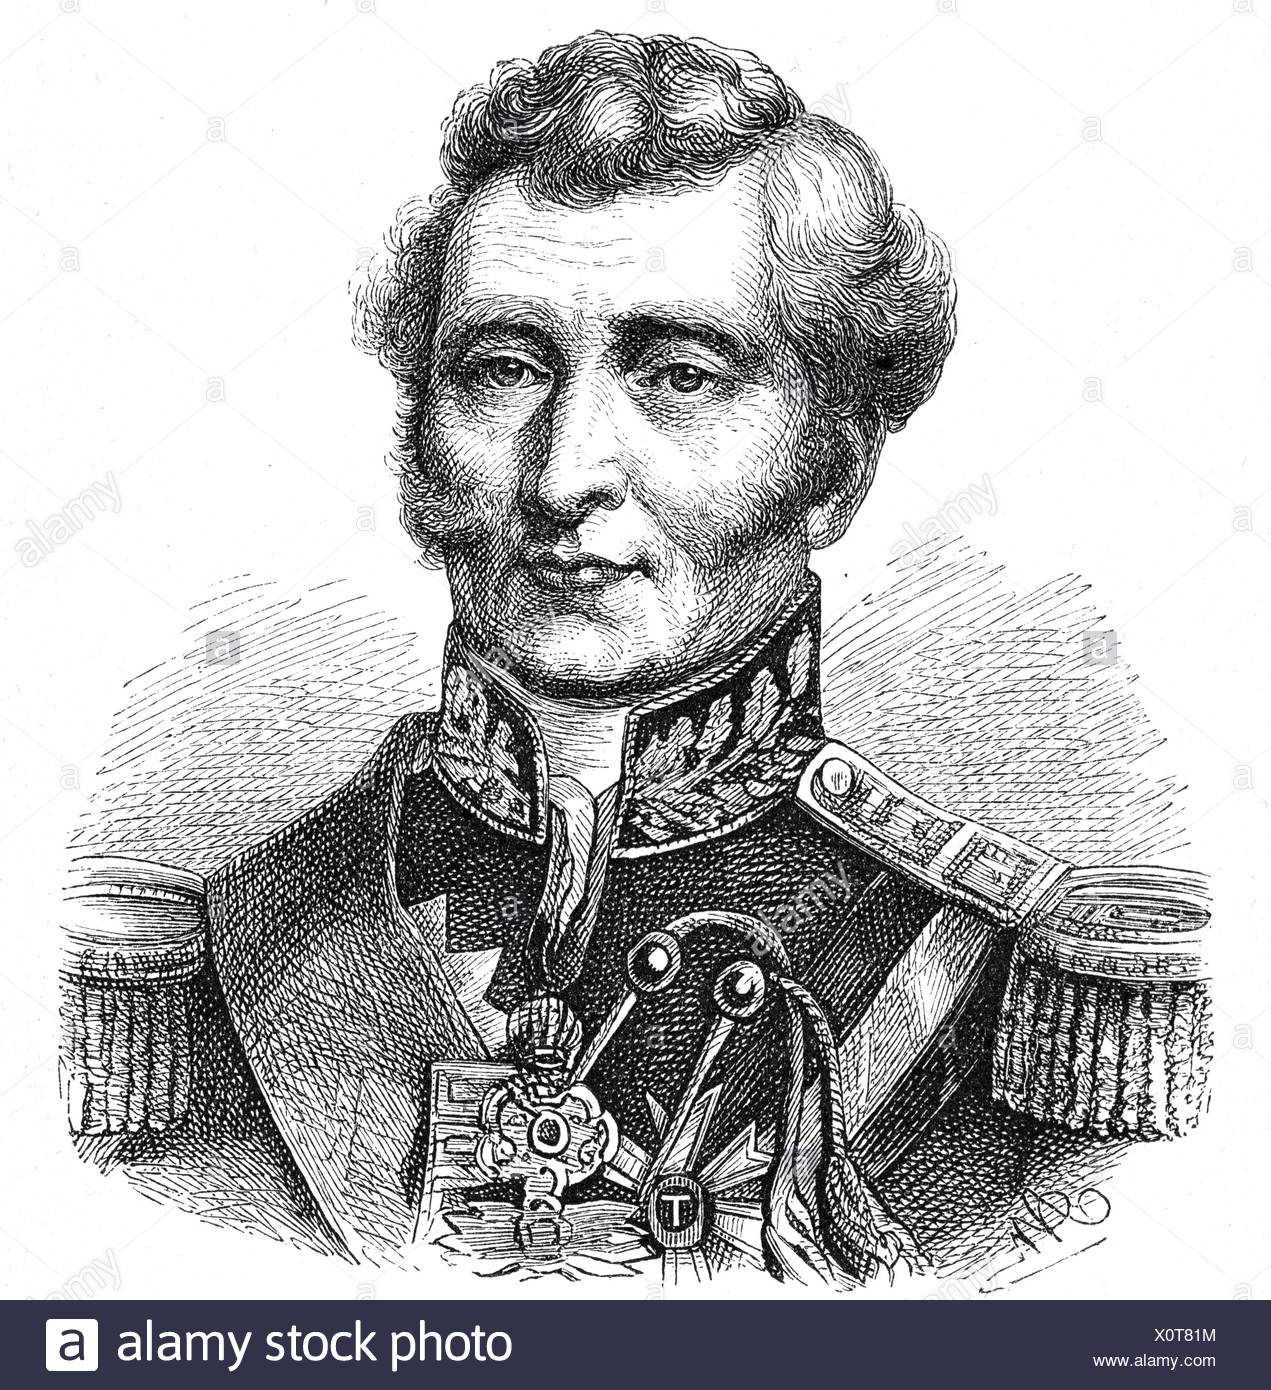 Wellington, Arthur Wellesley Duke of, 1.5.1769 - 14.9.1852, British General and politician, portrait, engraving, 19th century, Additional-Rights-Clearances-NA - Stock Image